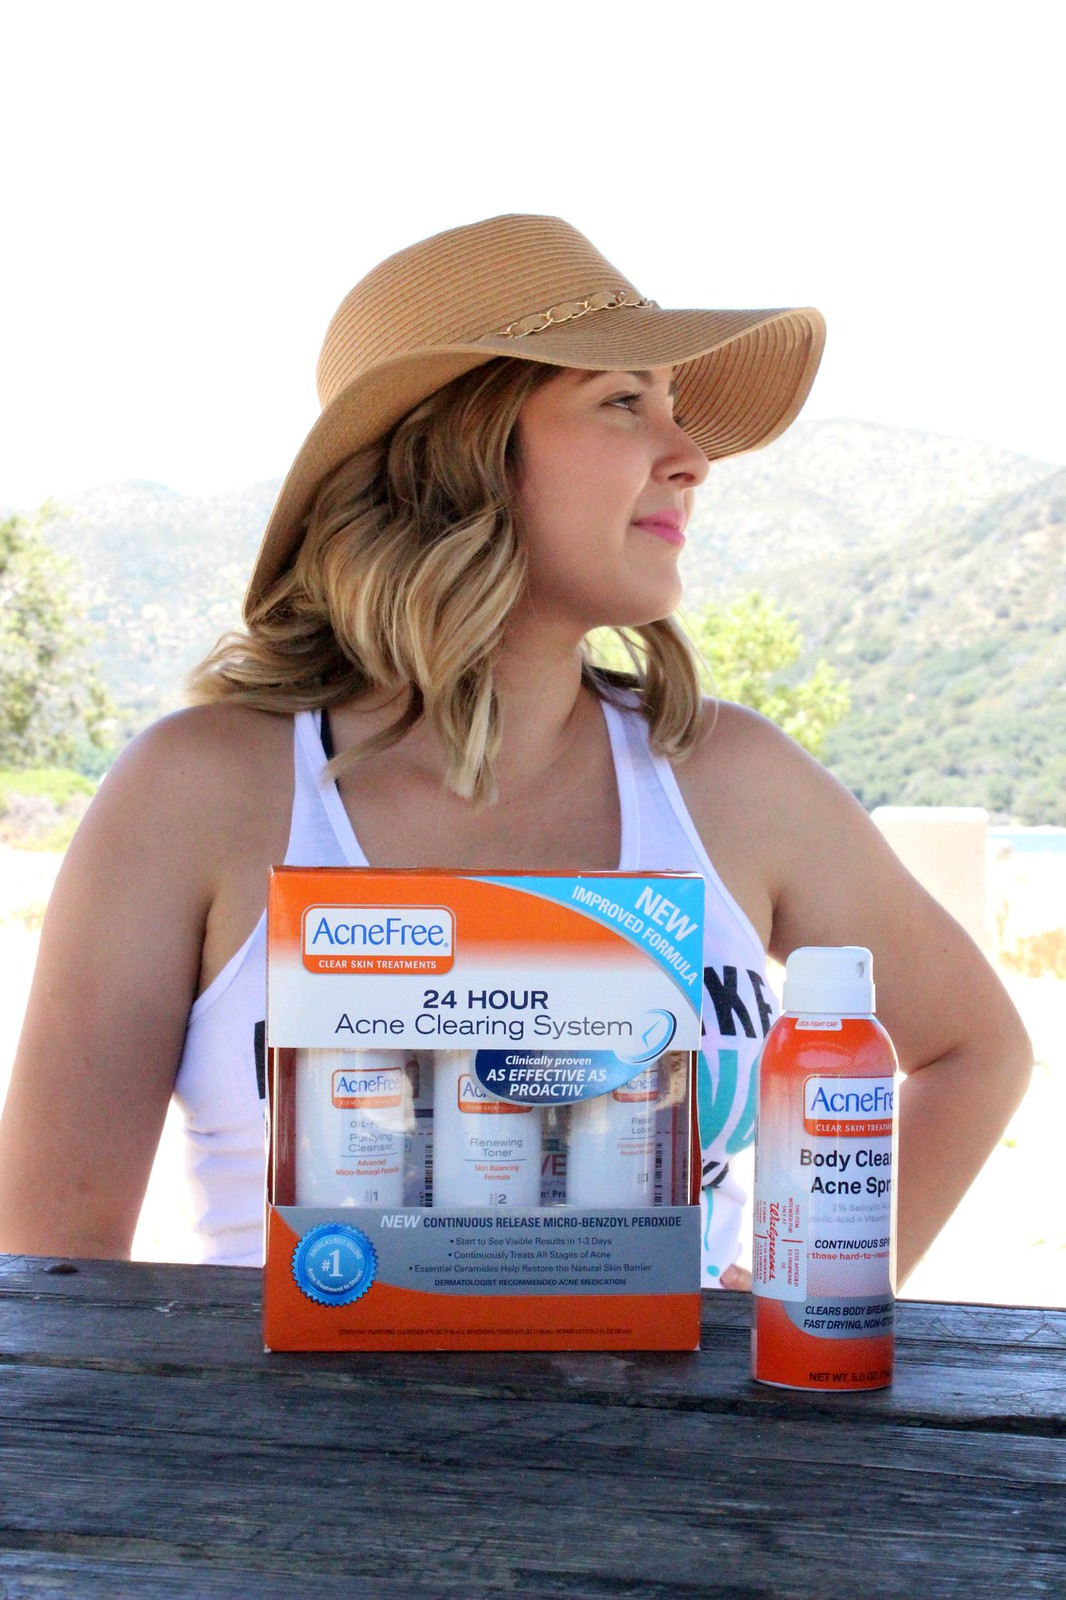 Be AcneFree this Summer with Neutrogena #AcneFreeSummer